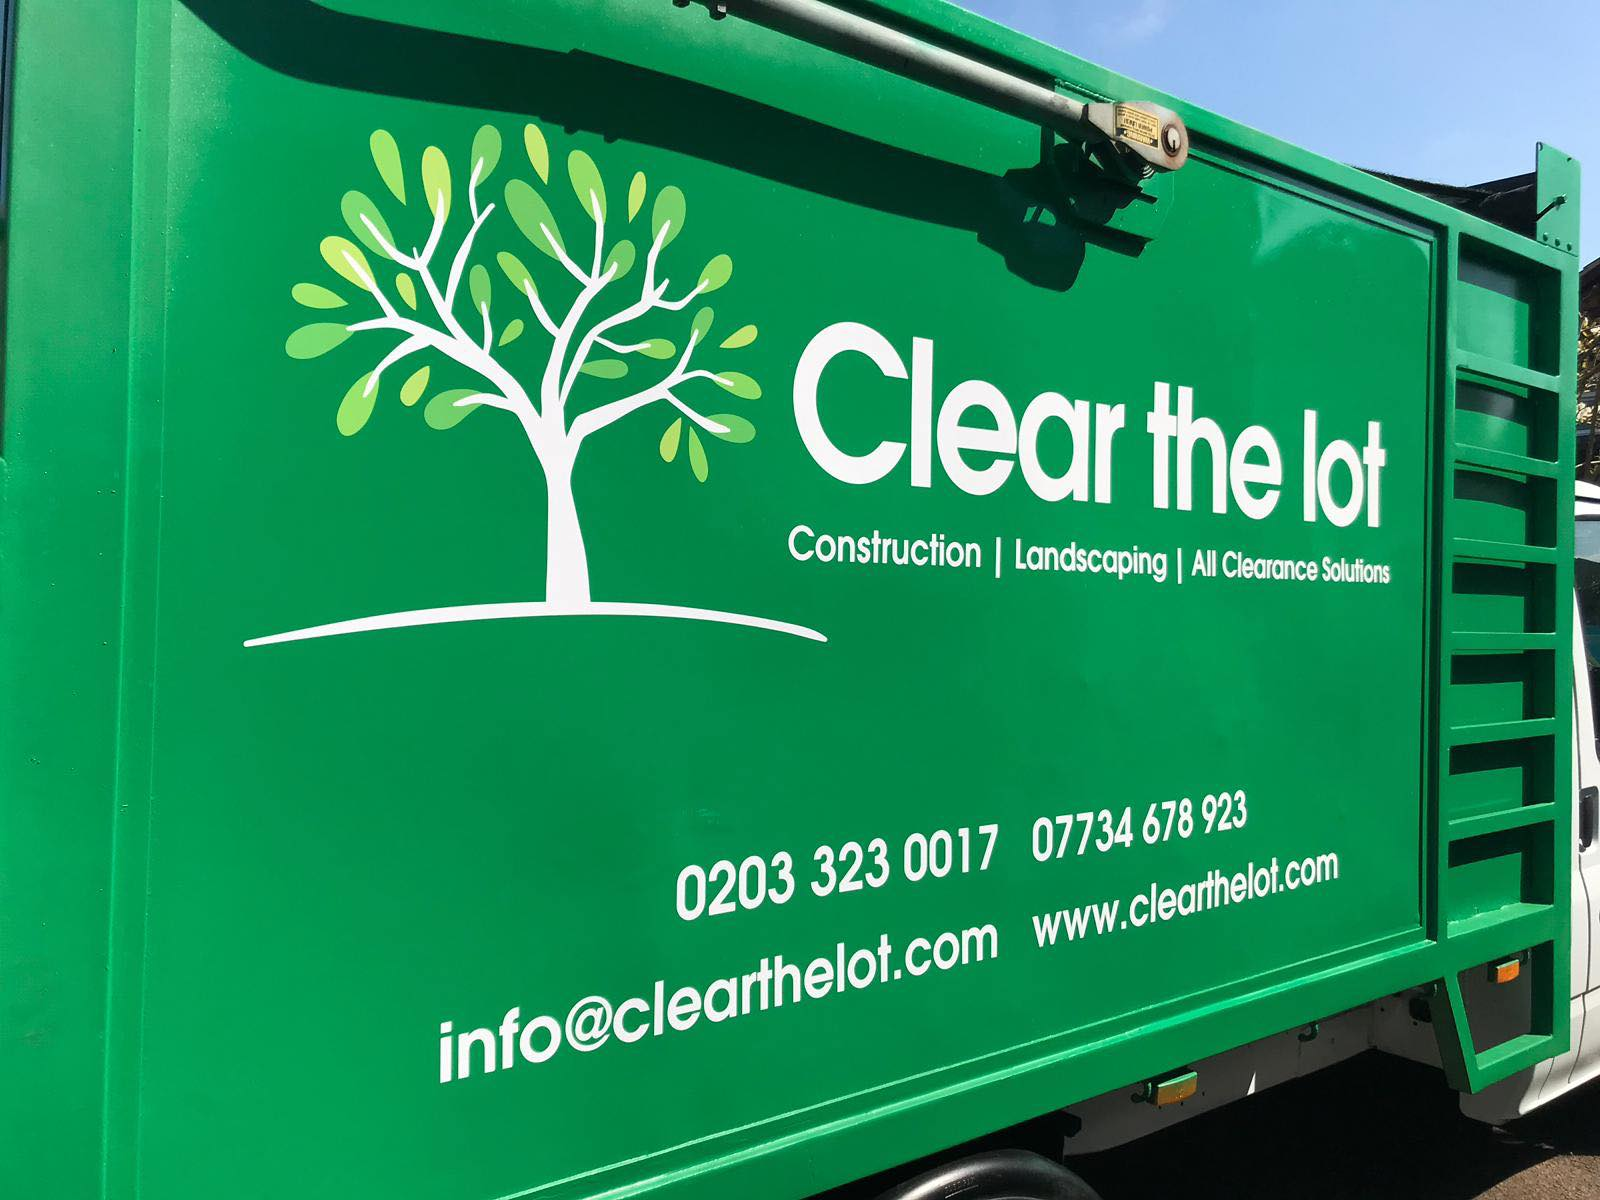 House Clearance & Garden Waste Clearance around the London - Clear the Lot